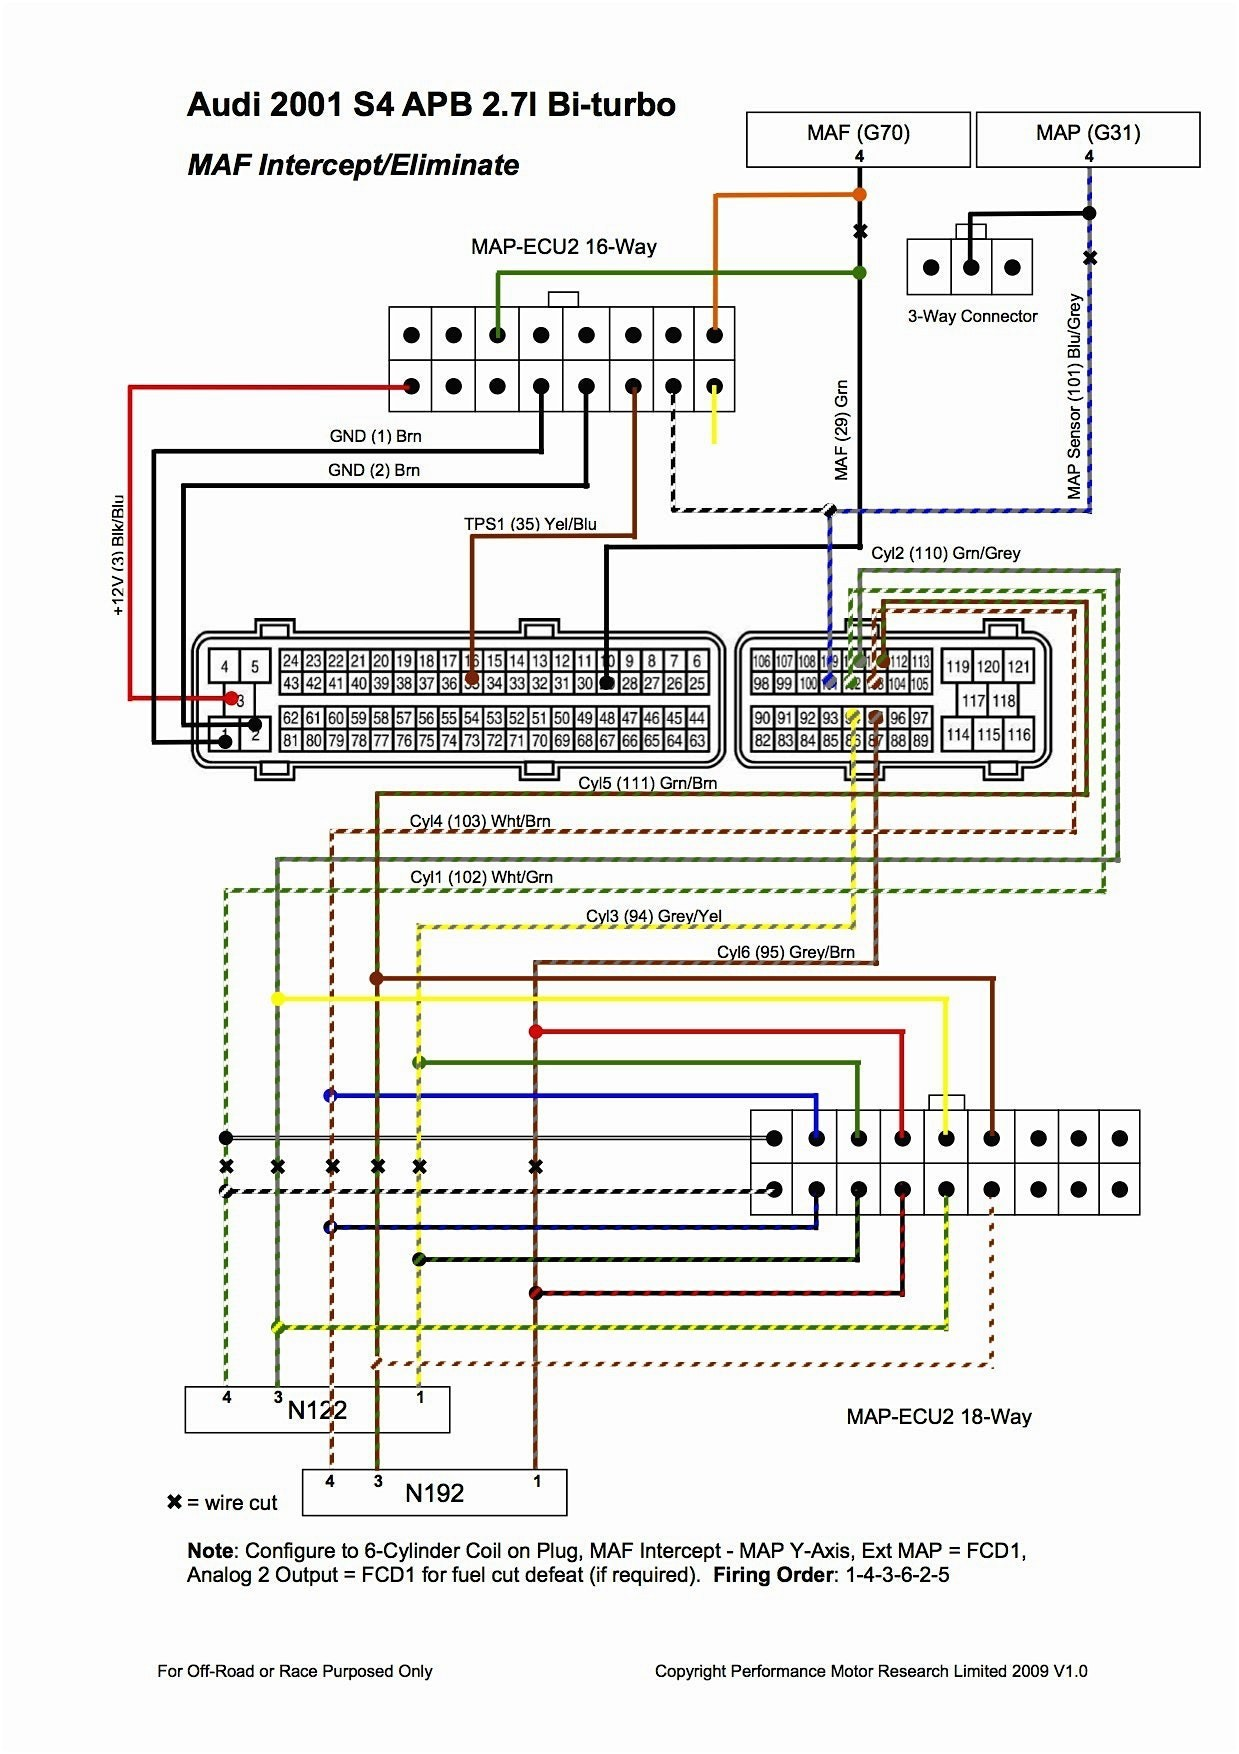 2007 Toyota Tundra Wiring Diagram 2000 Sienna Fuse Box Honda Accord